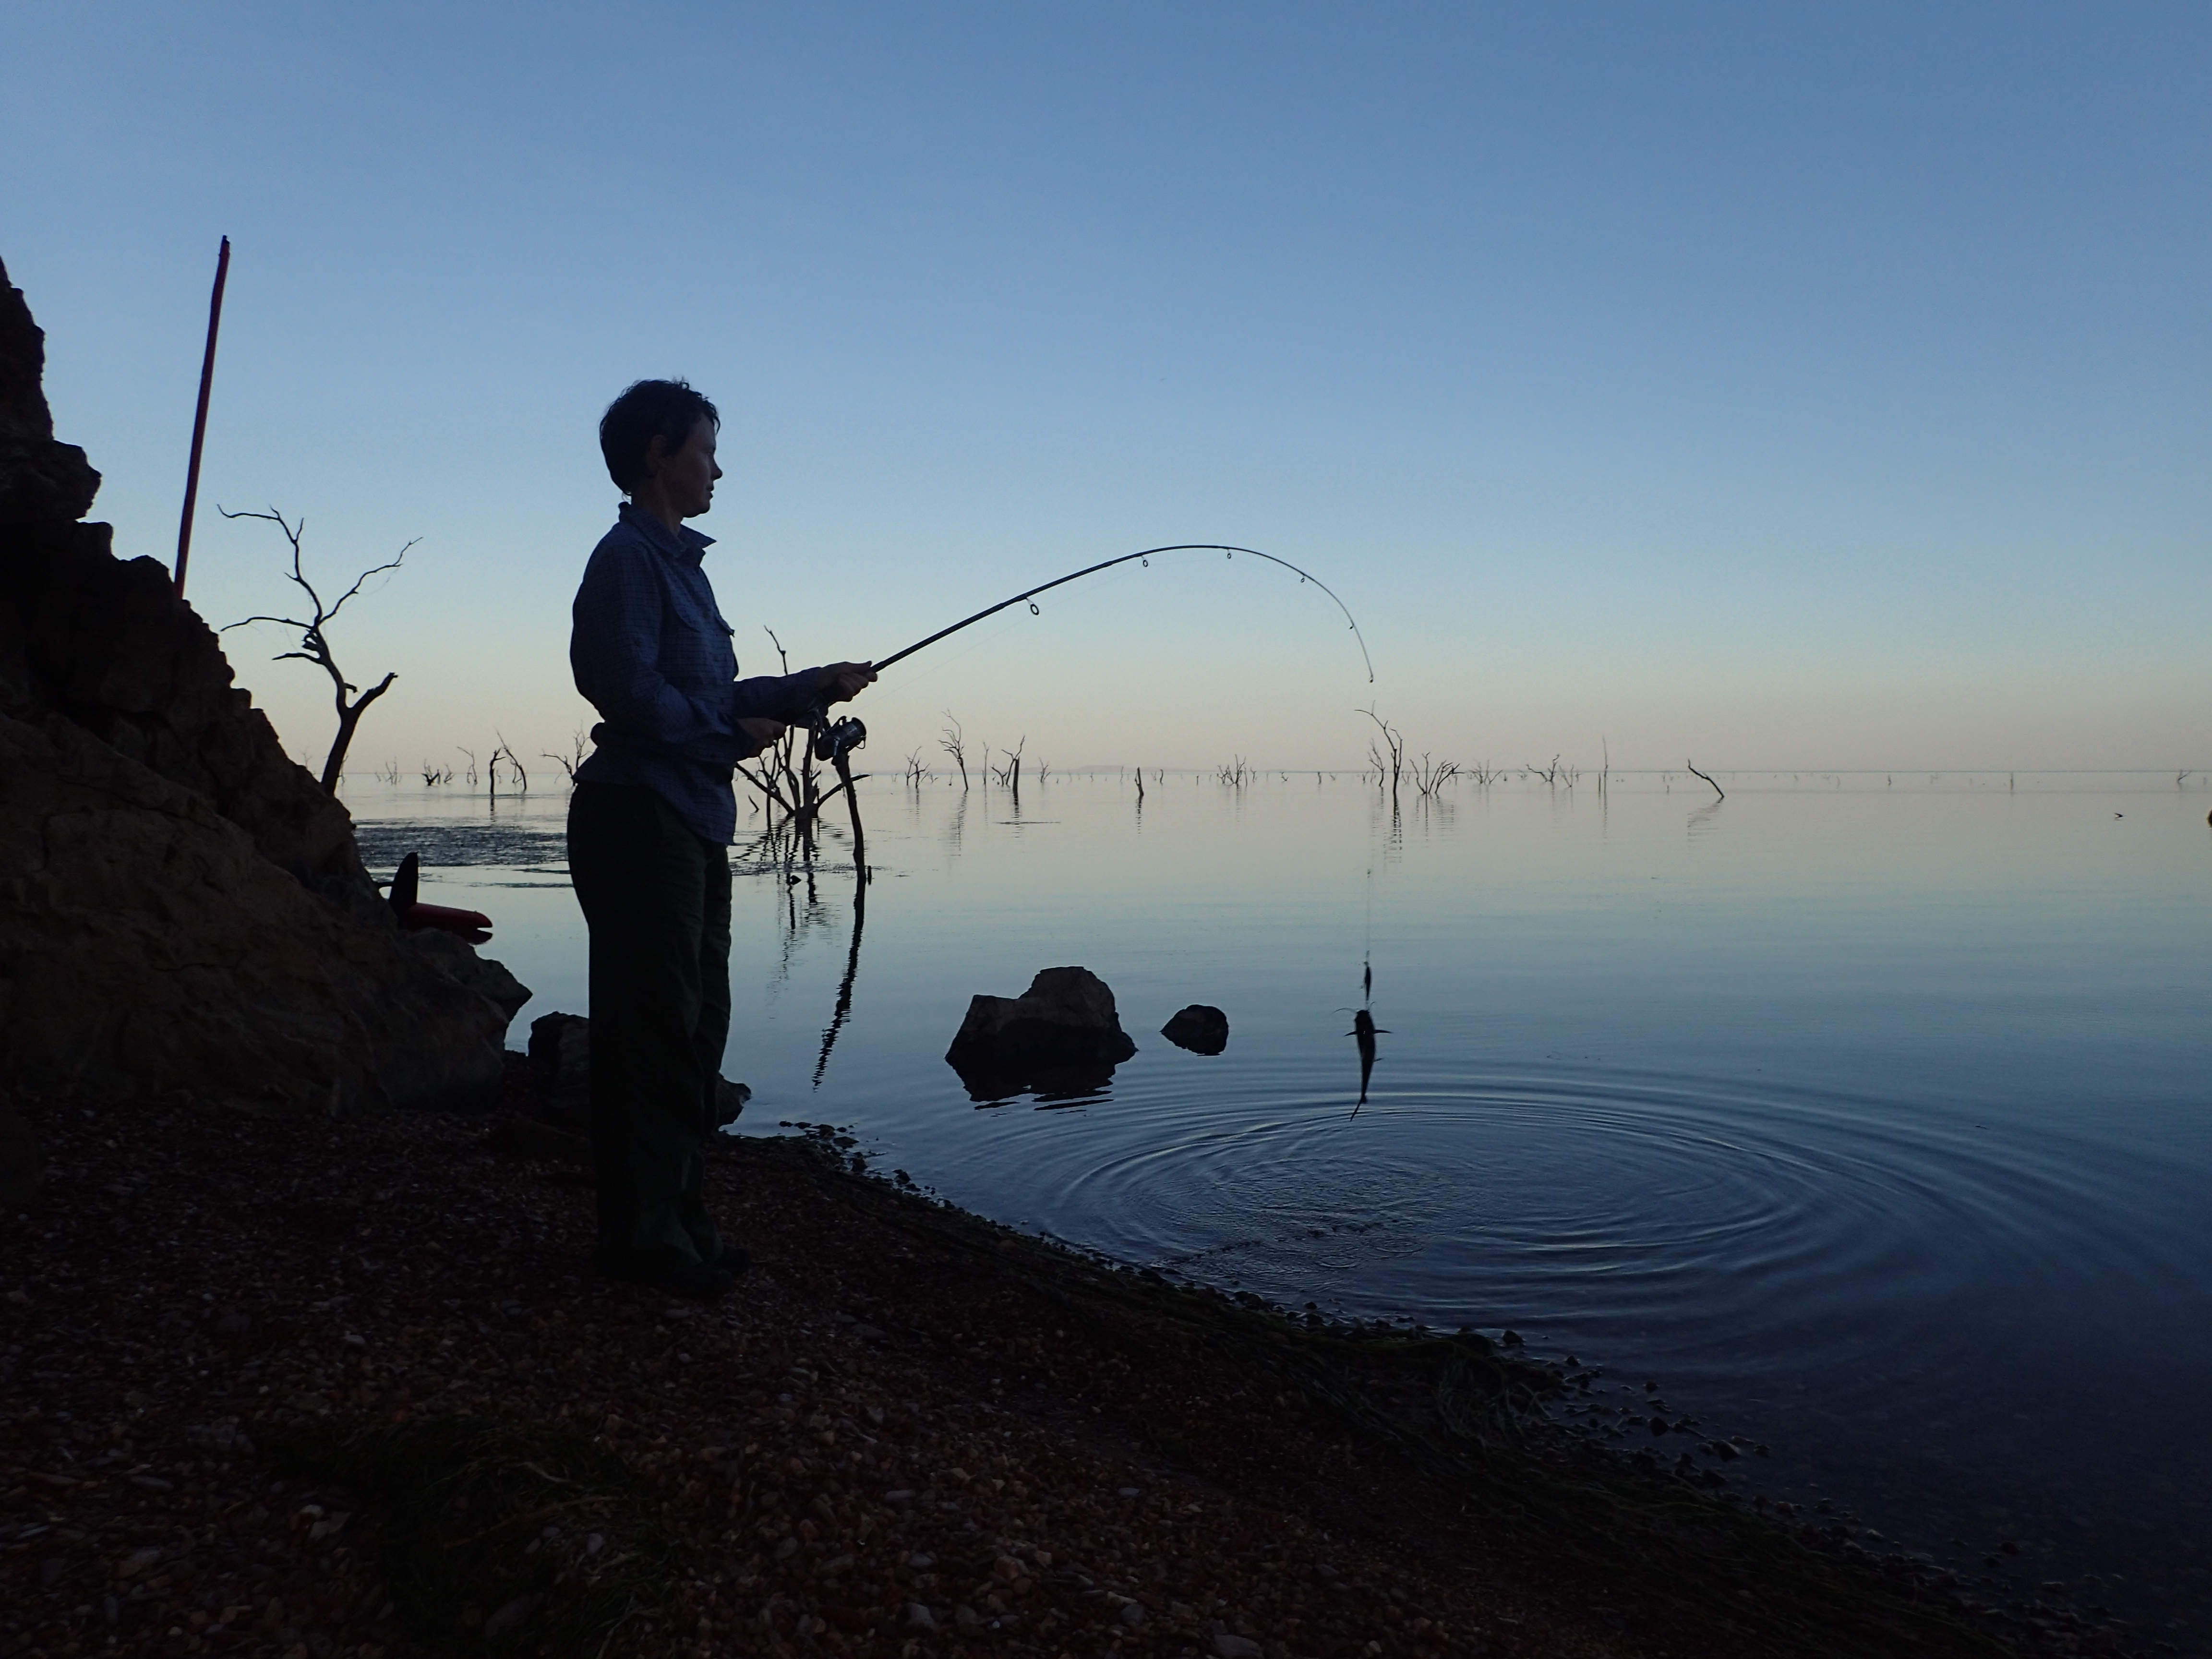 Fishing at Hole in the wall